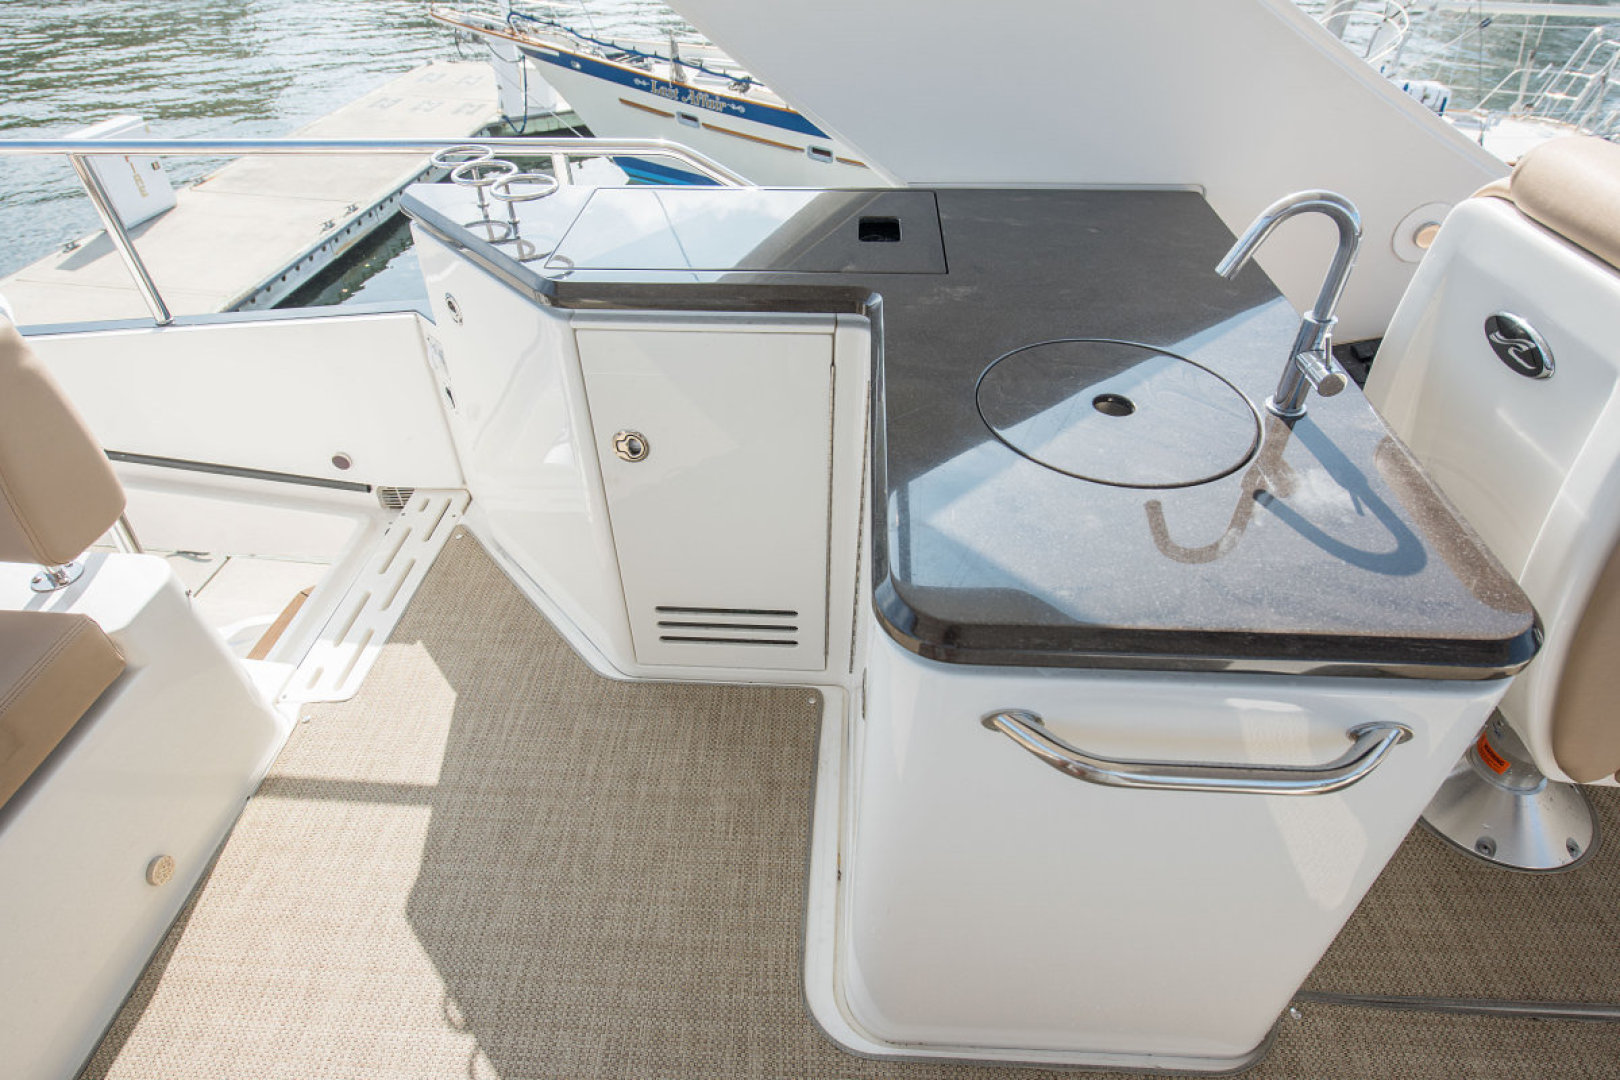 Sea Ray-L590 Fly 2016-2016 Sea Ray L590 Fly Ft. Lauderdale-Florida-United States-1284612 | Thumbnail